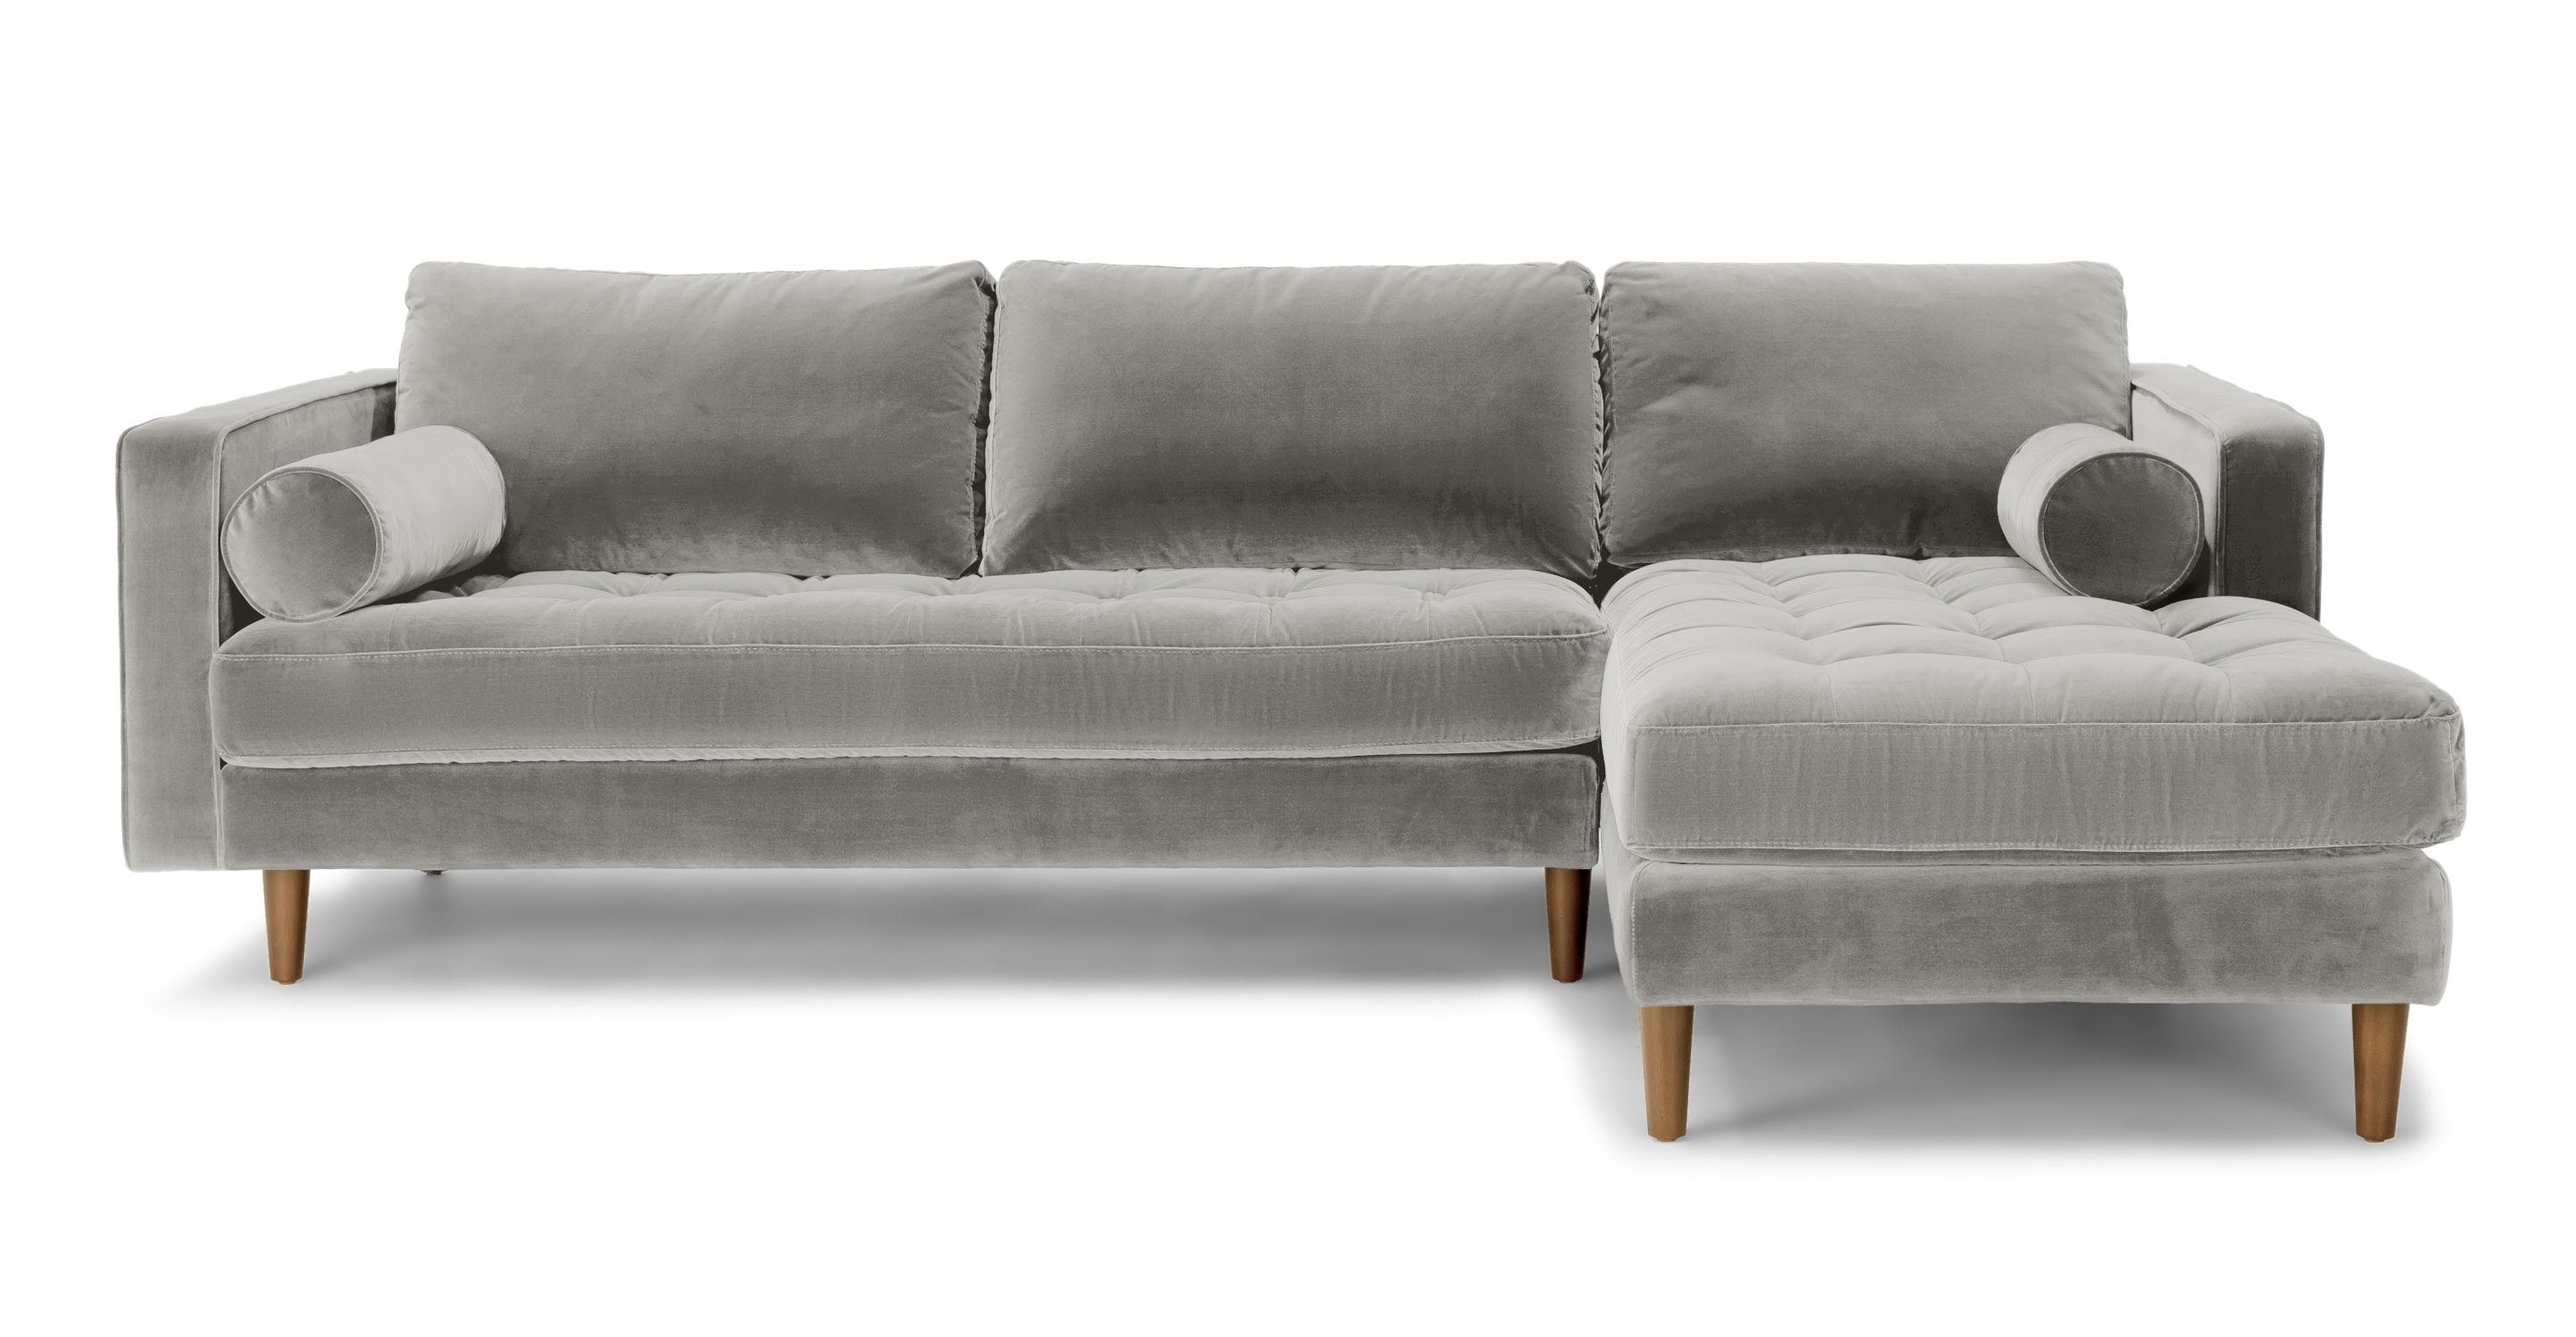 Abbieht Chaise Sectional Sofa With Large Cushionsengland Ivy throughout Regina Sectional Sofas (Image 1 of 10)